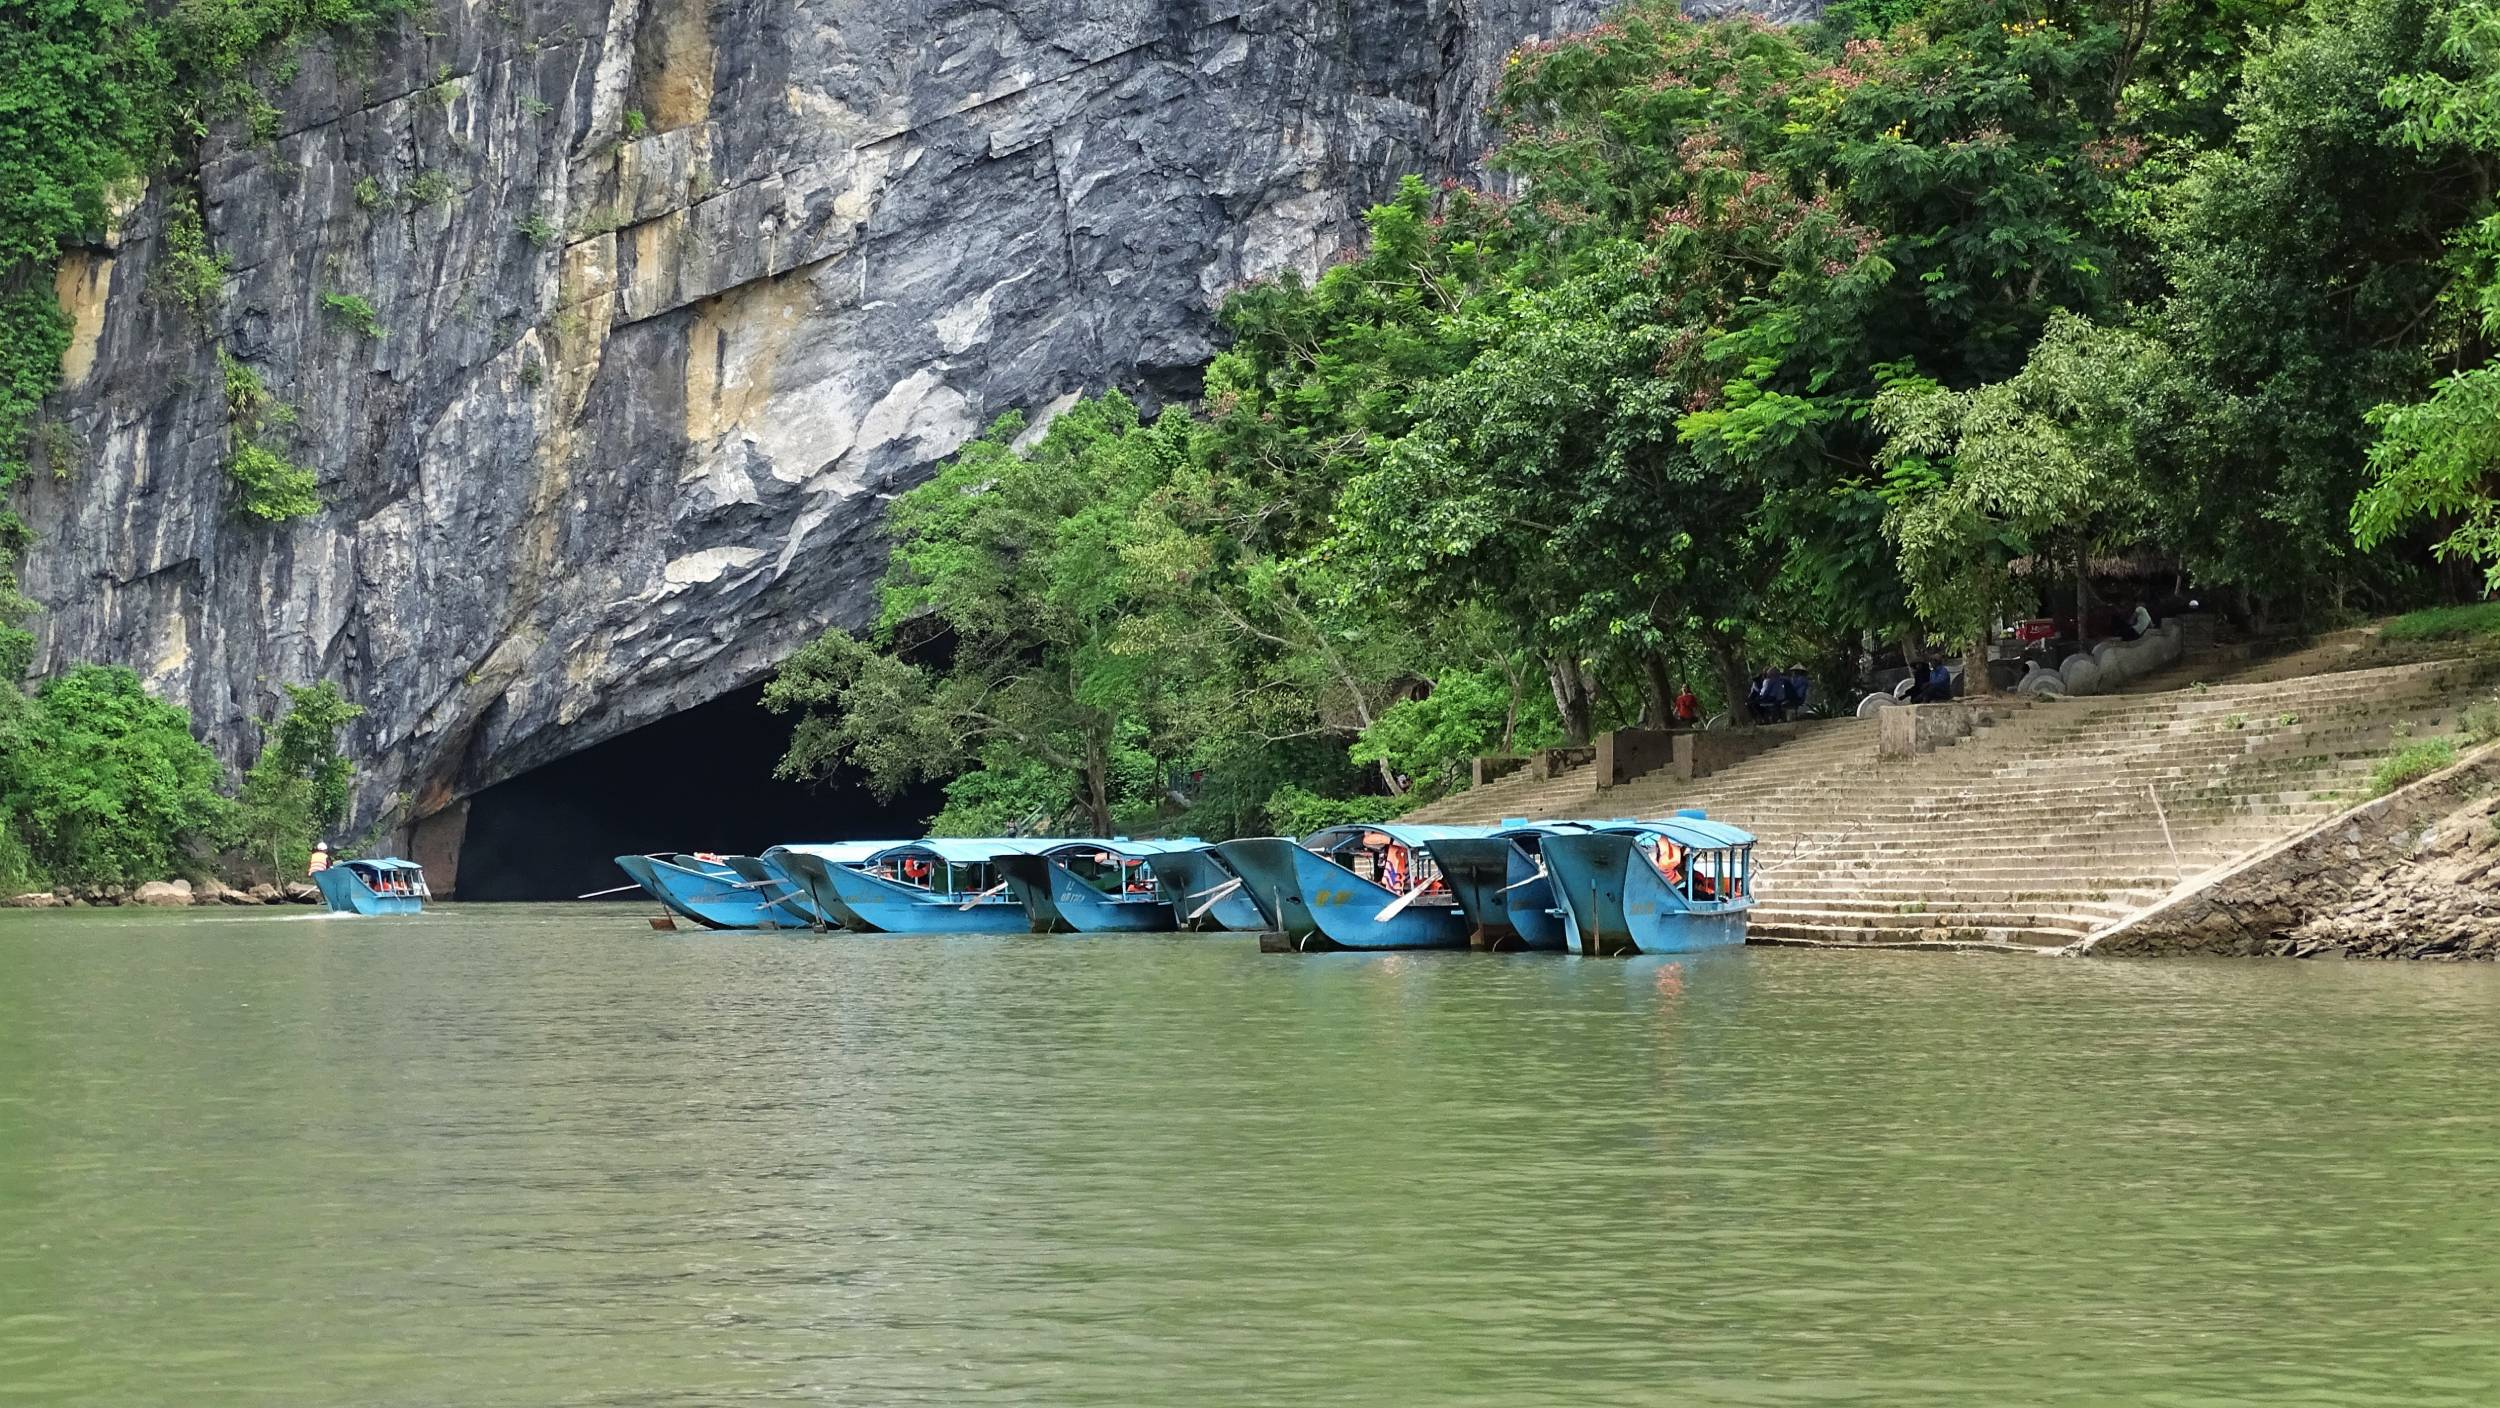 Boats moored at the entrance to Phong Nha Cave, located directly on the river